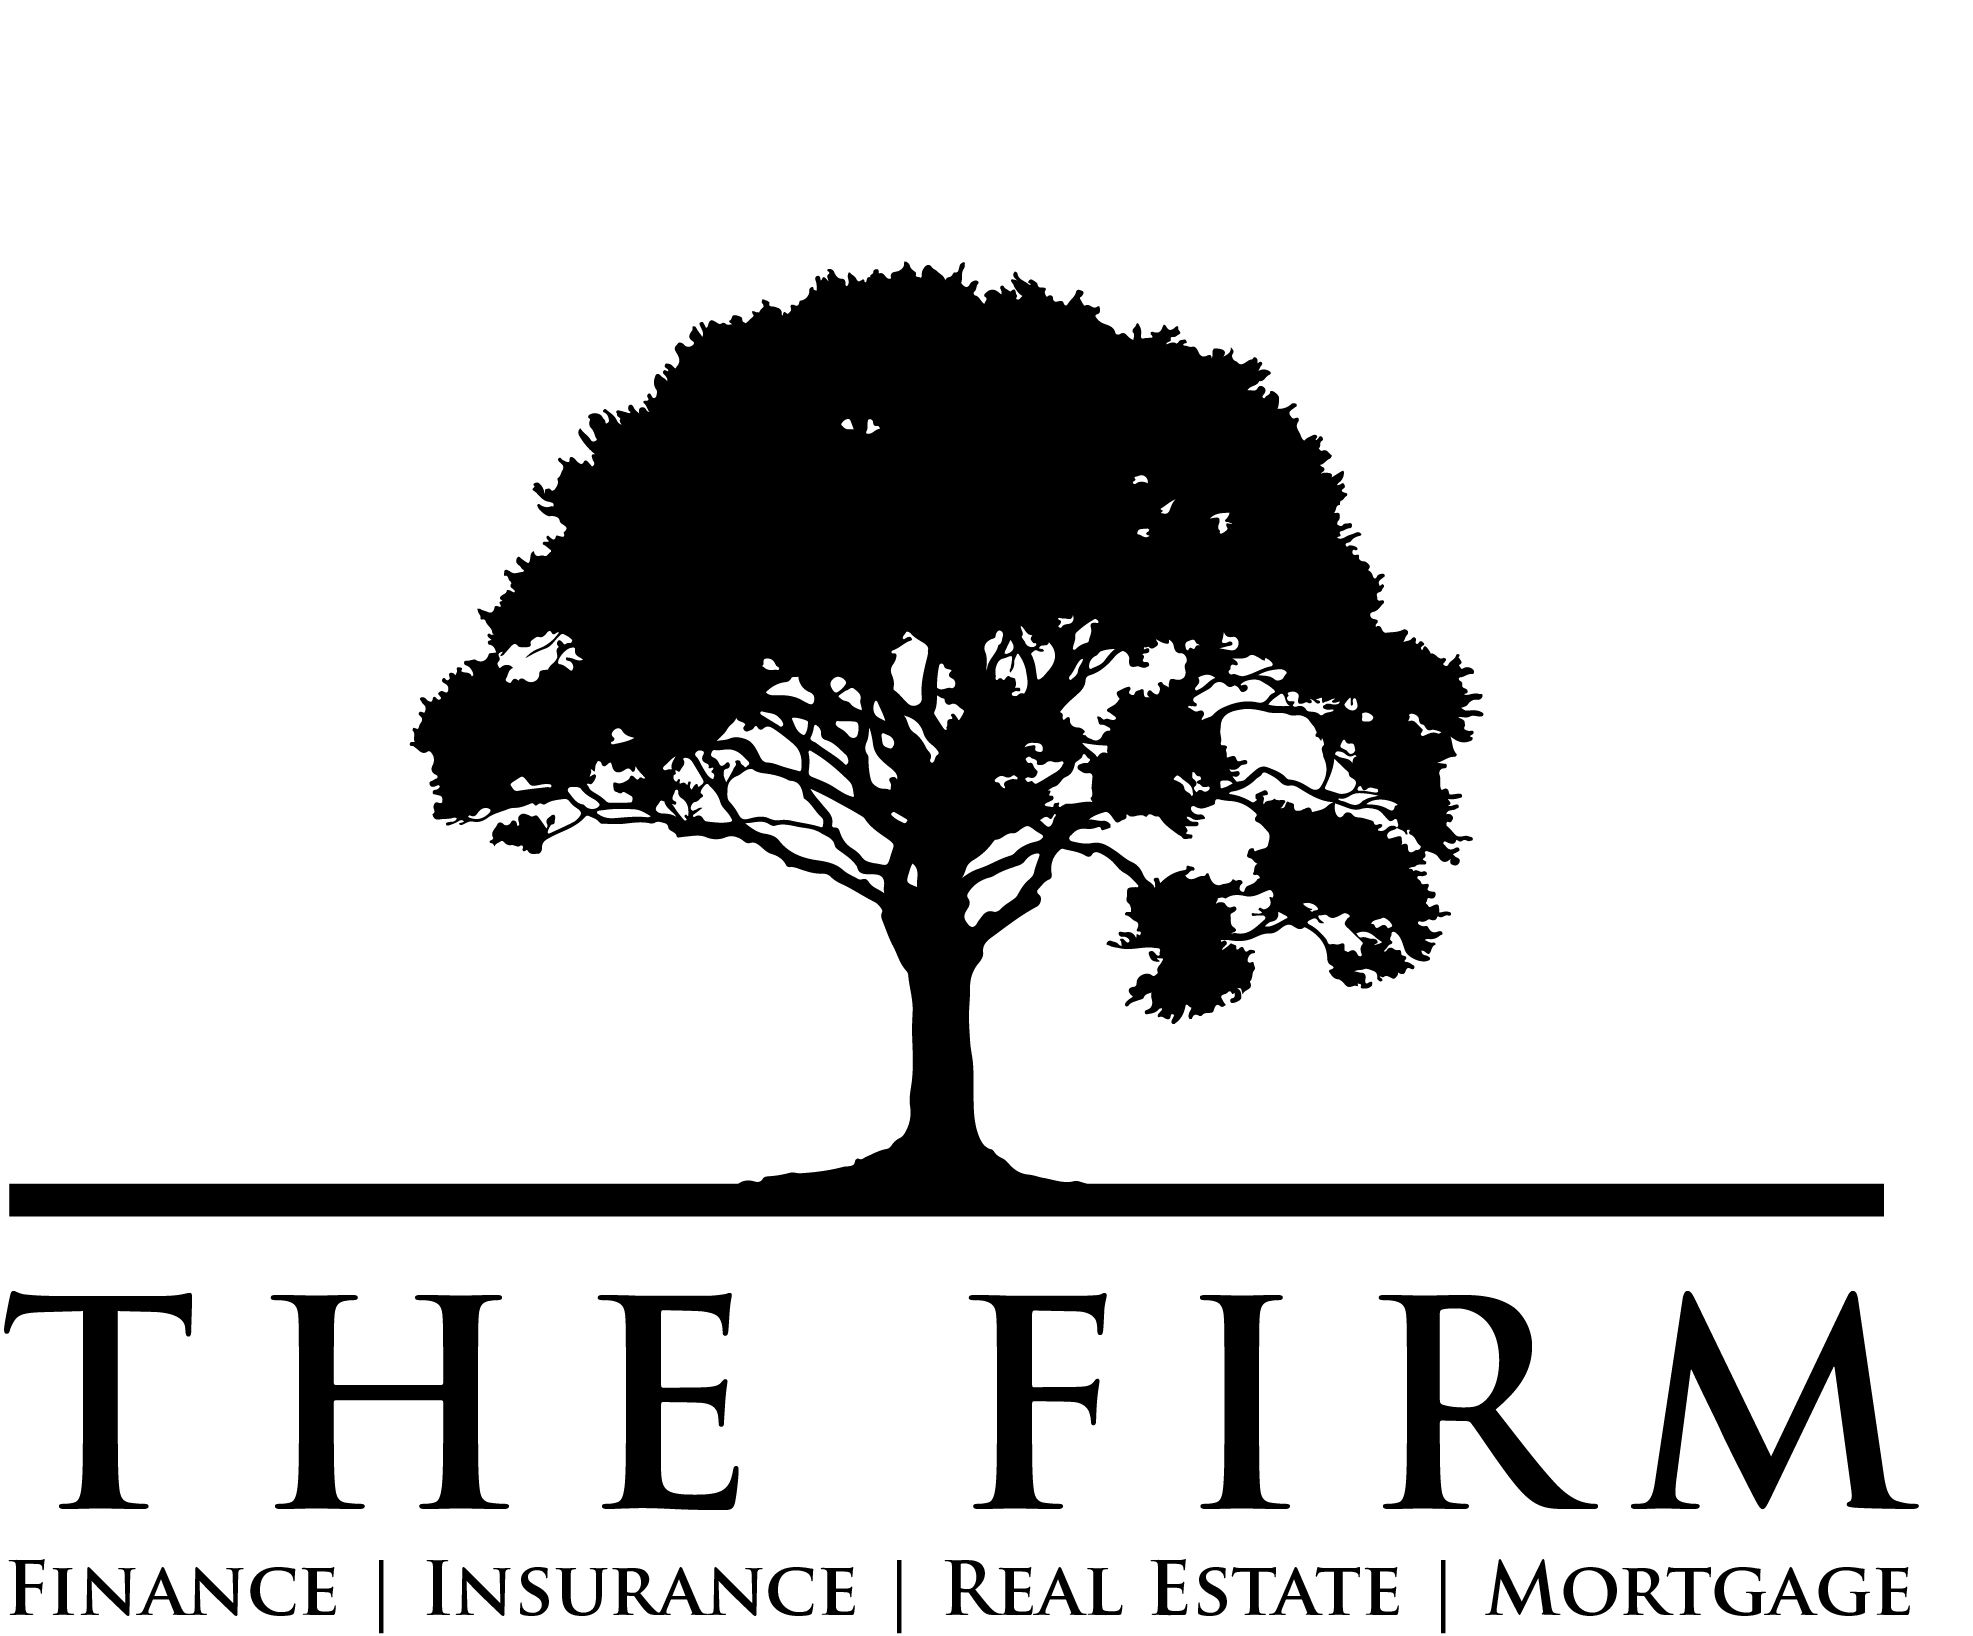 THE FIRM COMPANIES ANNOUNCES A ONESTOP SOLUTION FOR